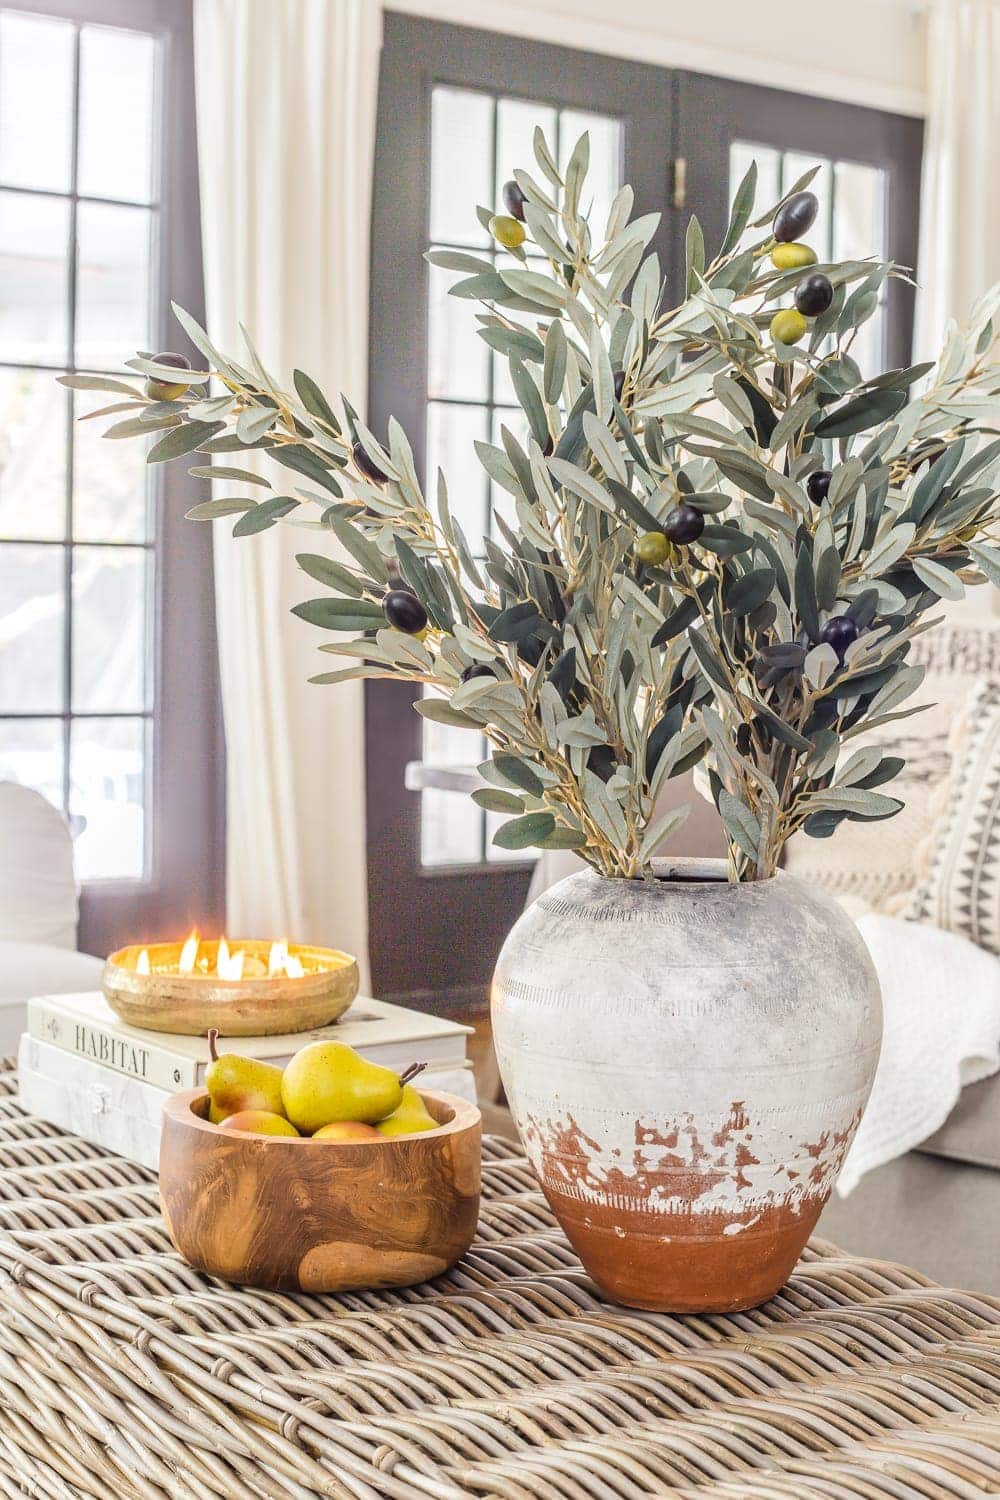 terracotta vase with olive branches wooden bowl with pears and fall candle